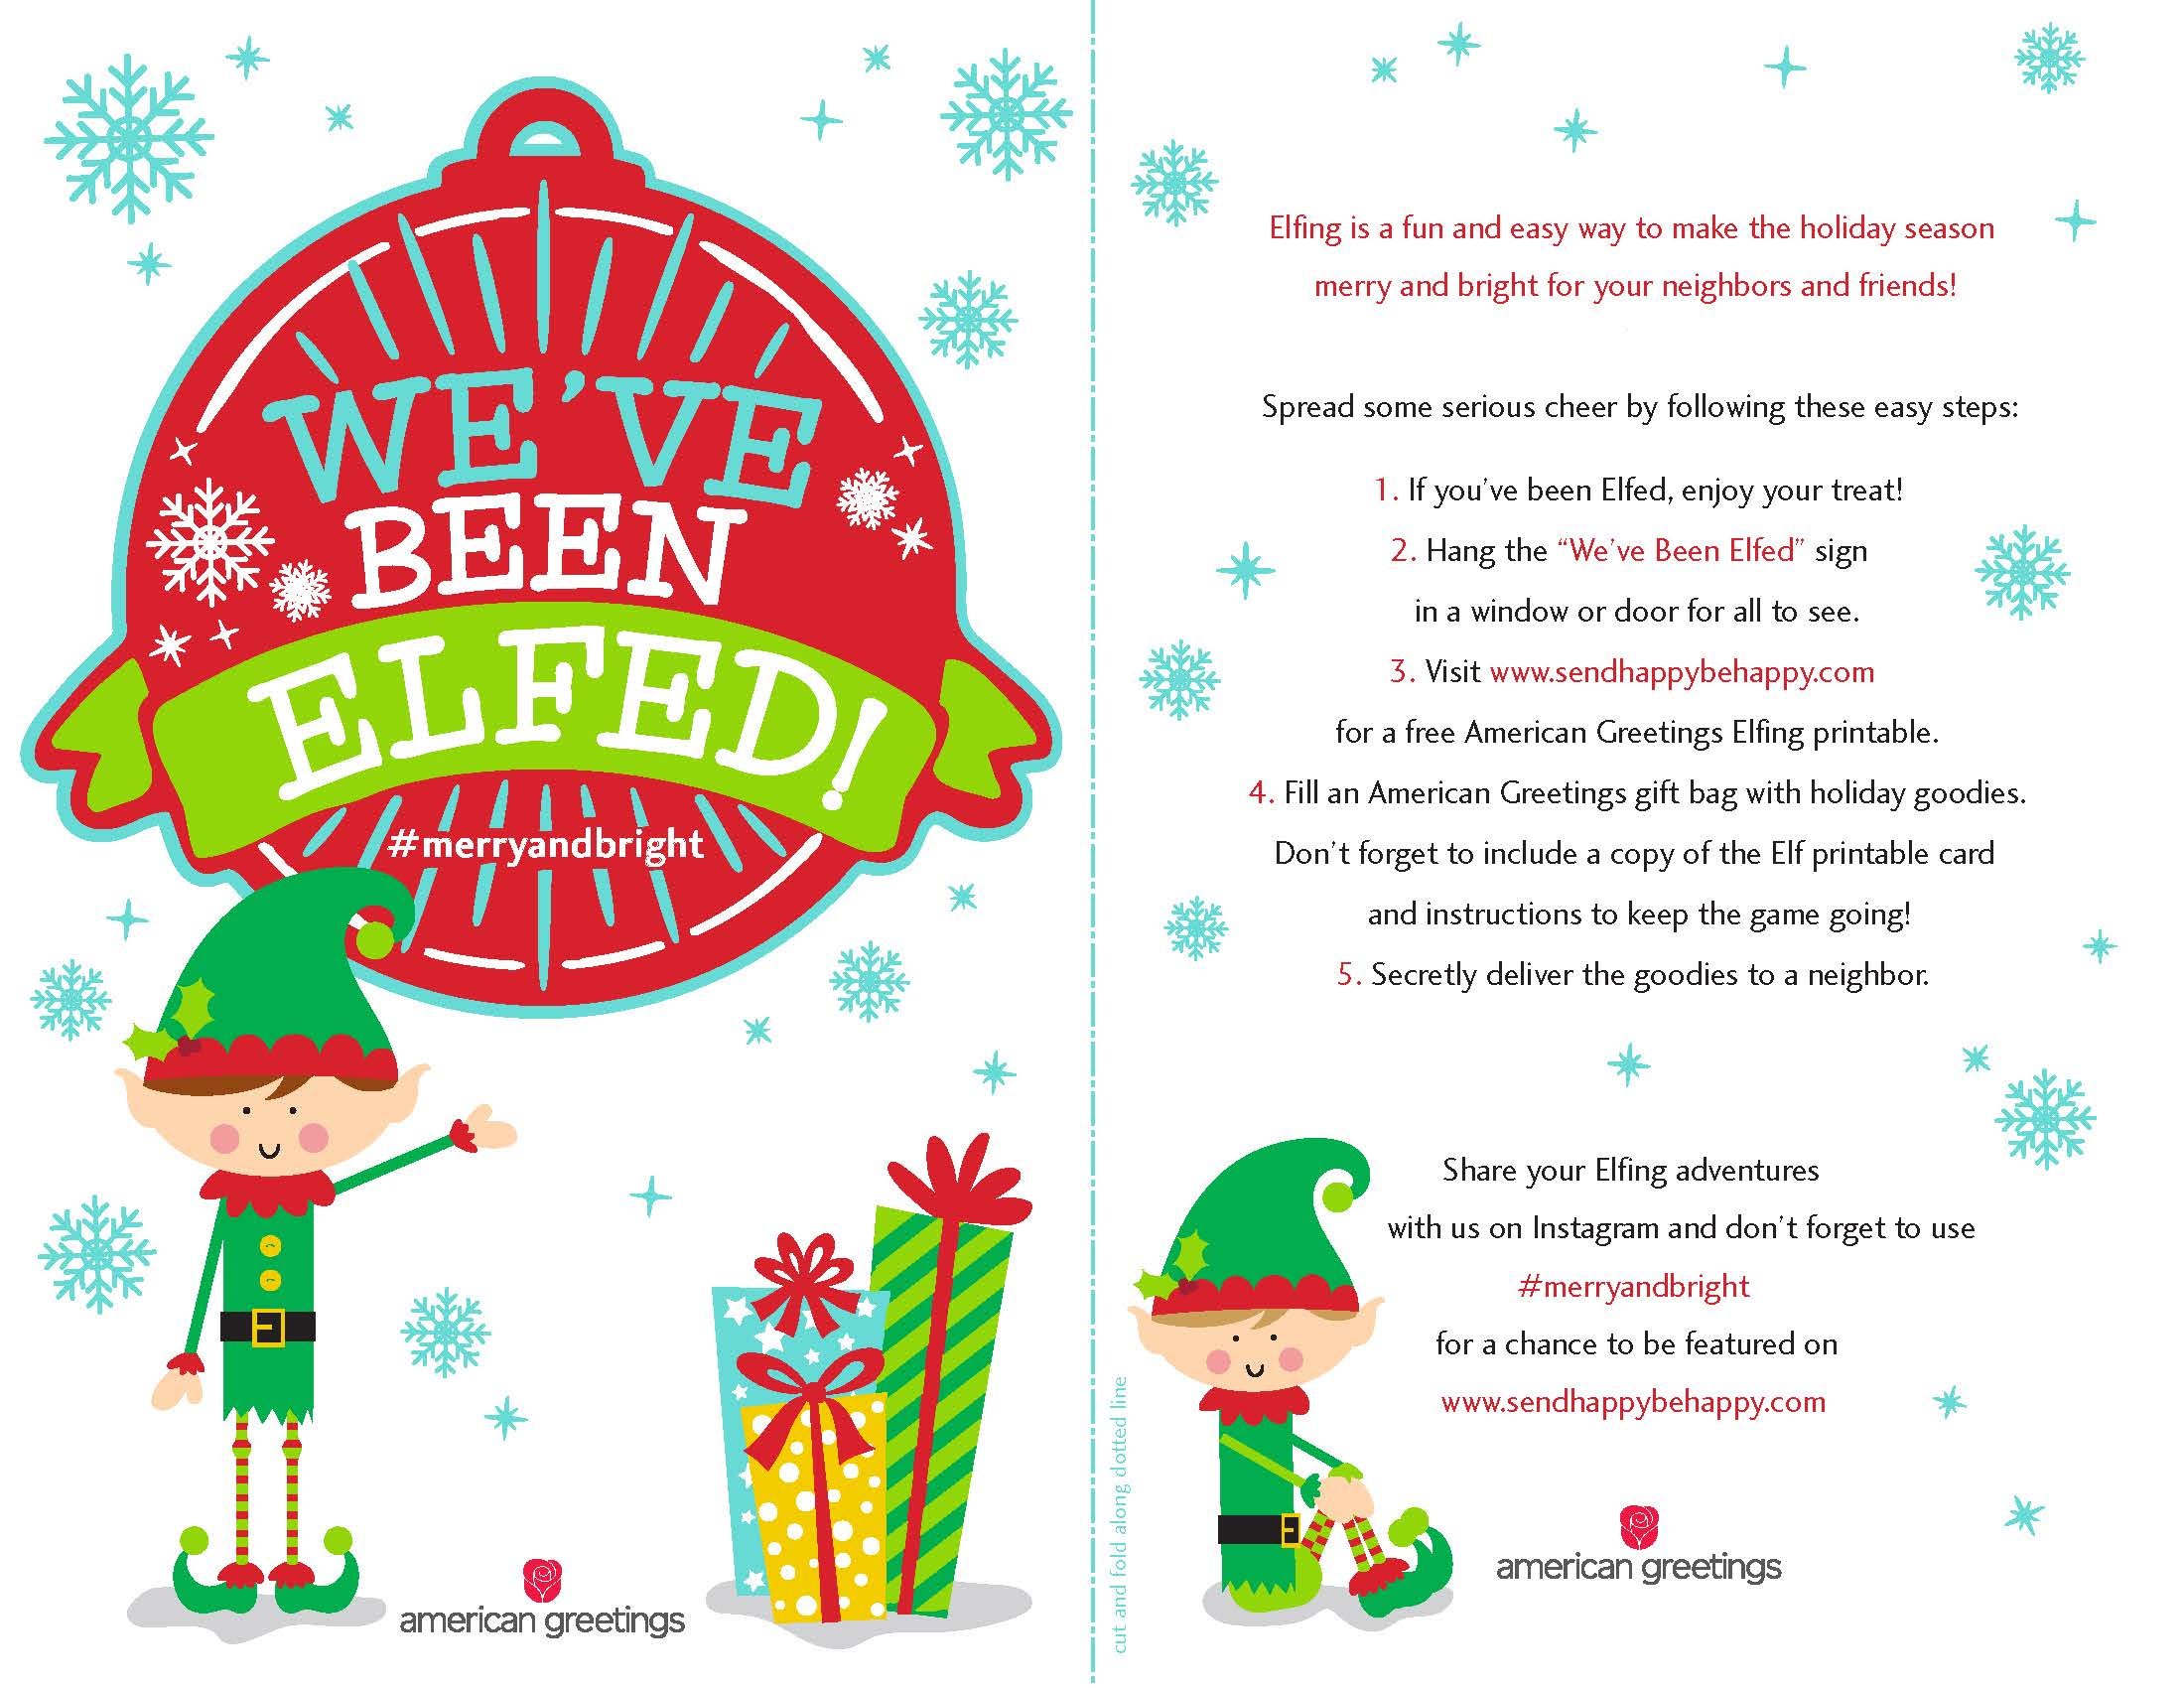 image regarding You've Been Elfed Free Printable known as Season towards Elf! (No cost Printable) - American Greetings Blog site